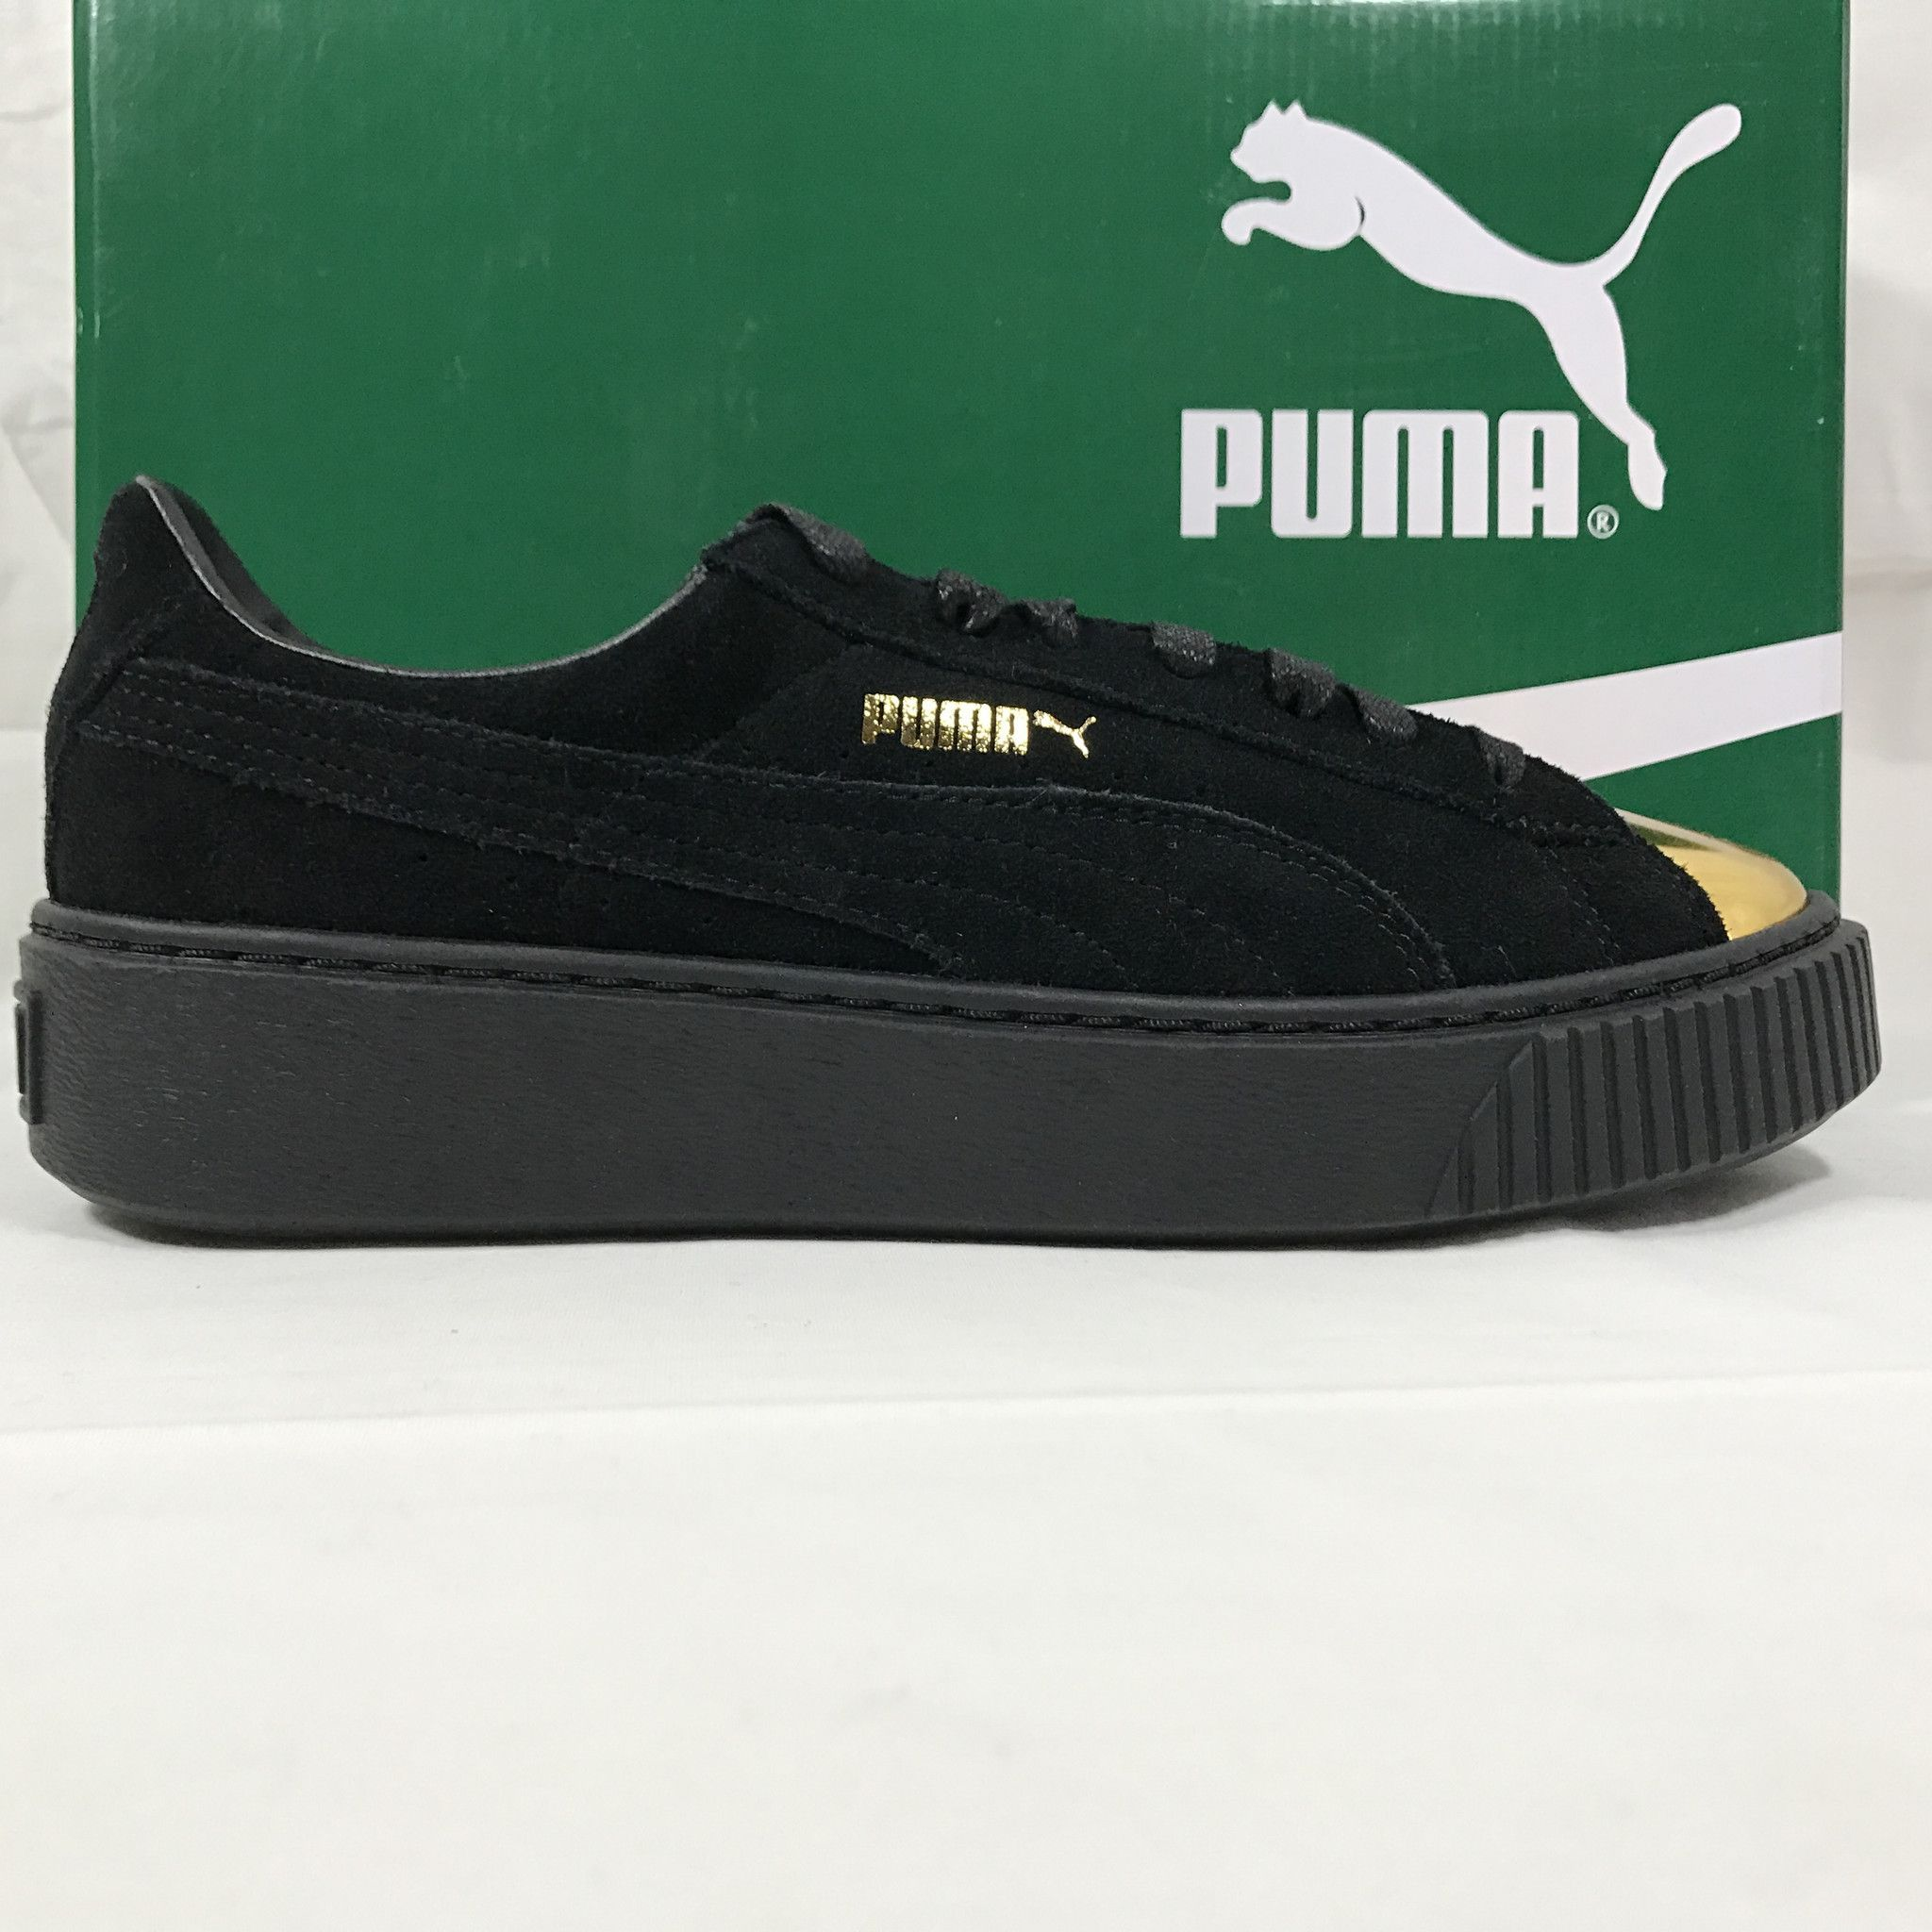 Name: Puma Suede Platform Gold Size: Condition: Brand New